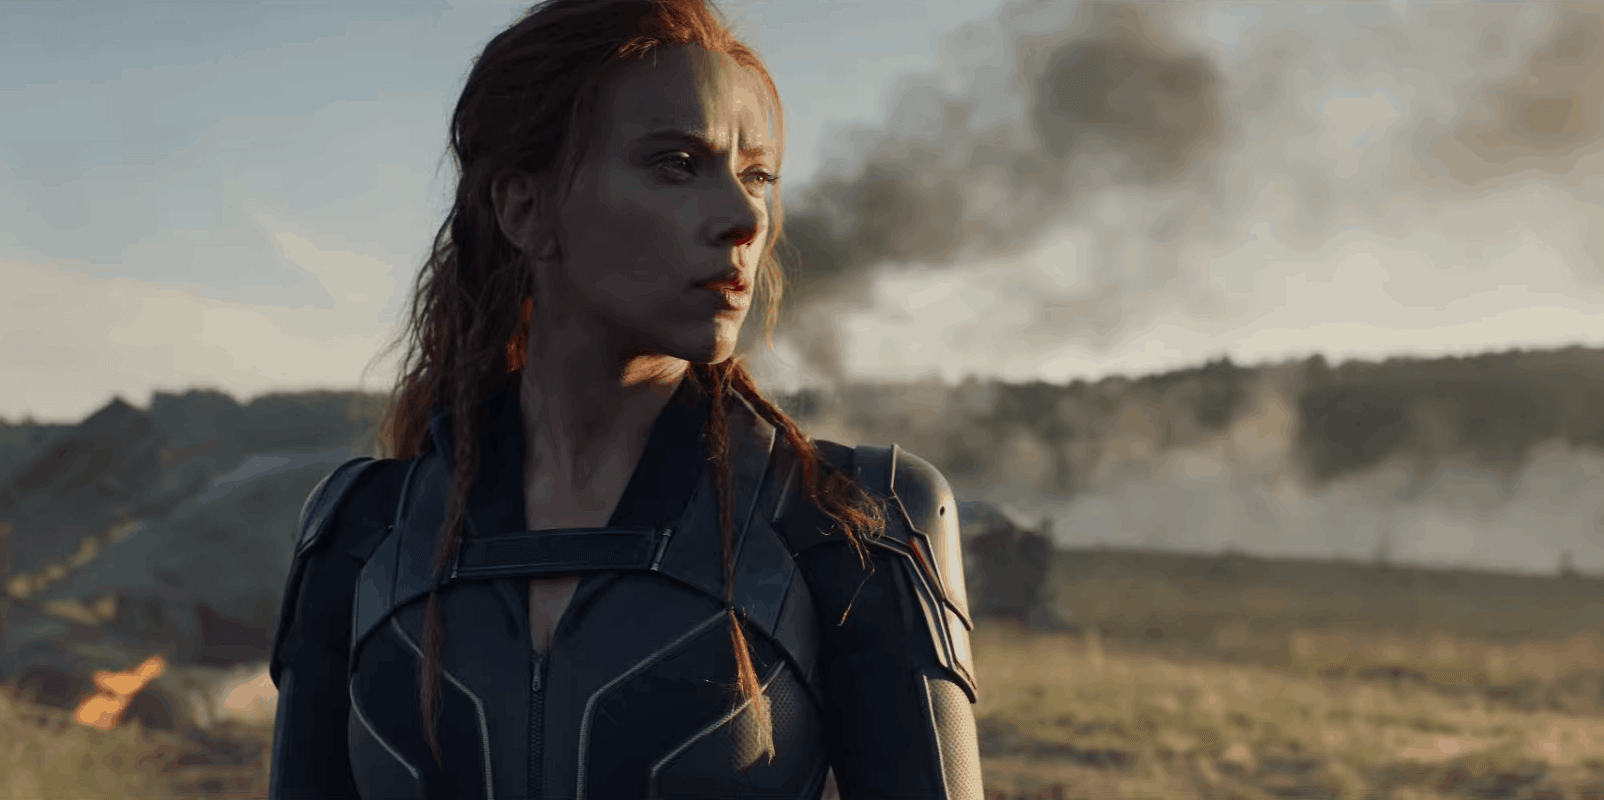 Black Widow Trailer Featured new suit Rob Liefeld Dead Mickey Mouse Instagram